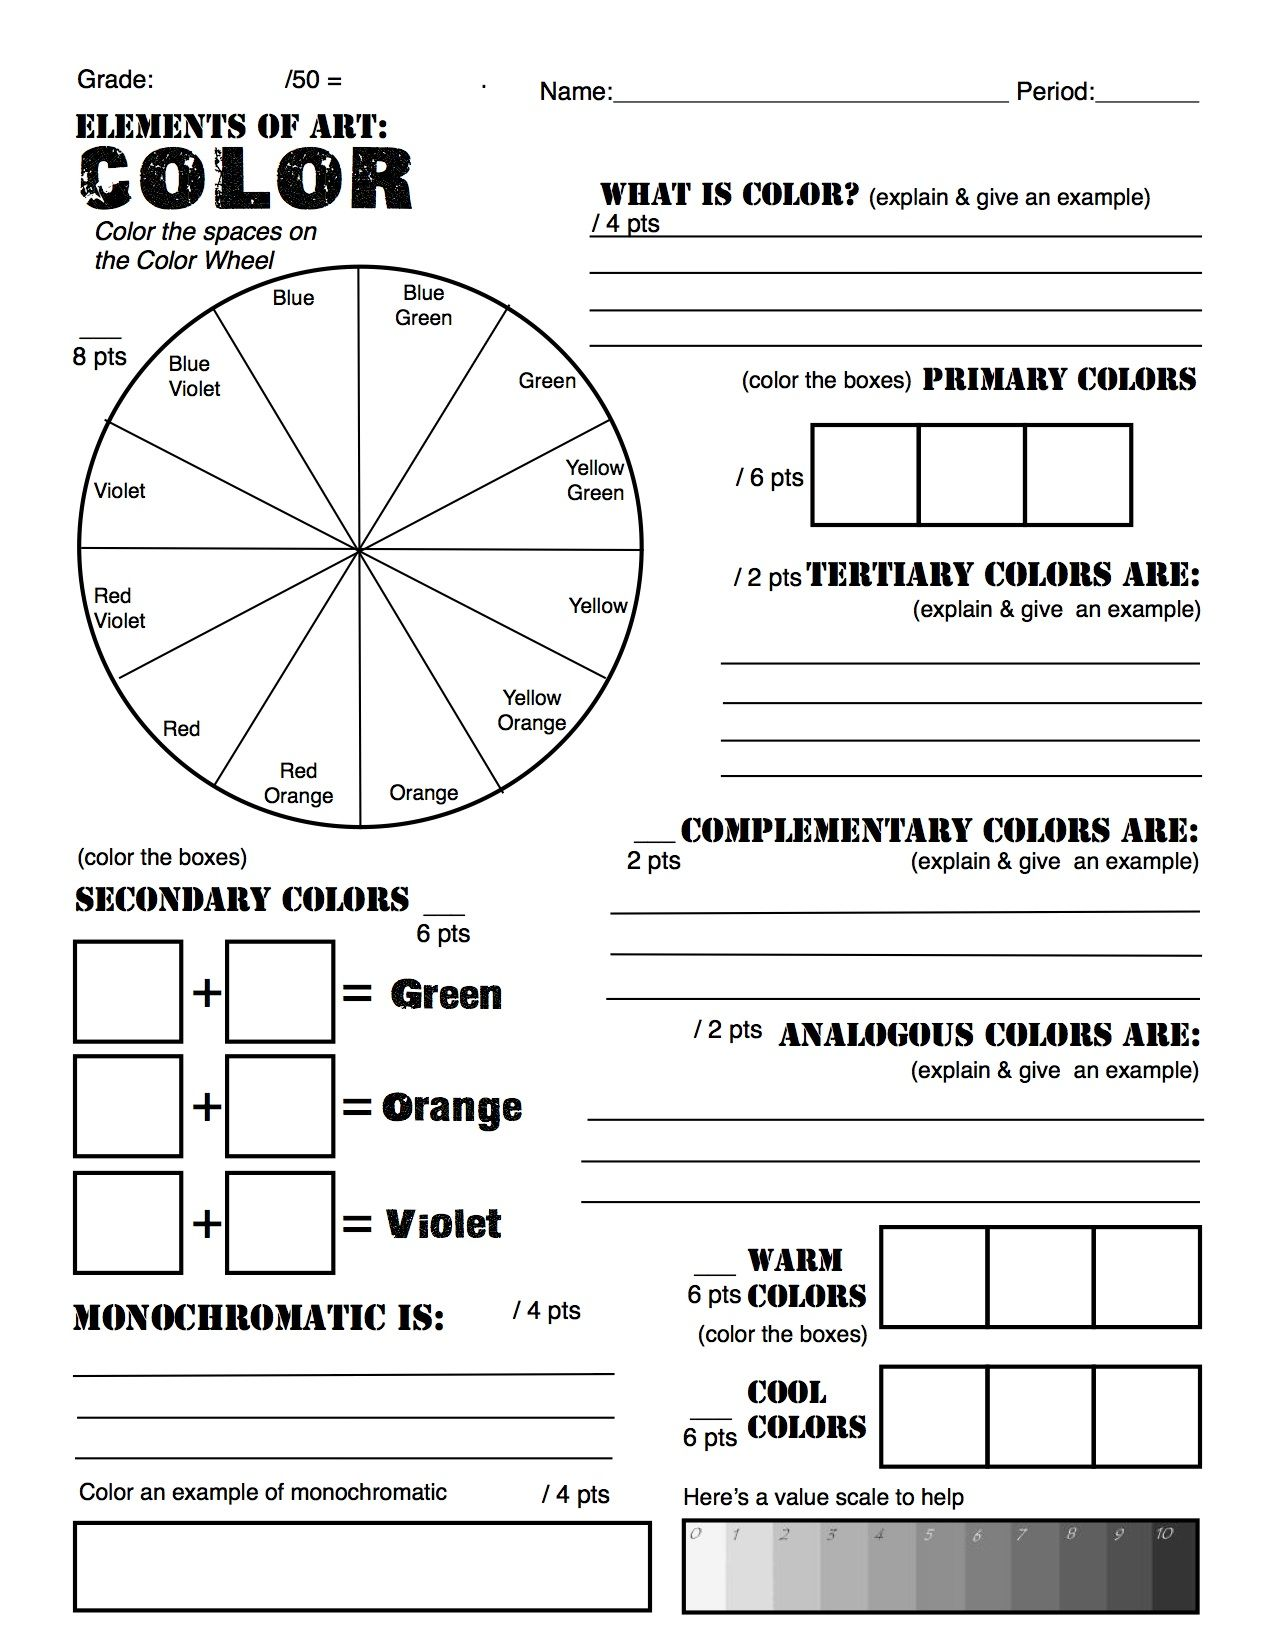 Color theory worksheet for kids - Color Theory Homework I Gave To My Studio In Art Kids When I Was Student Teaching